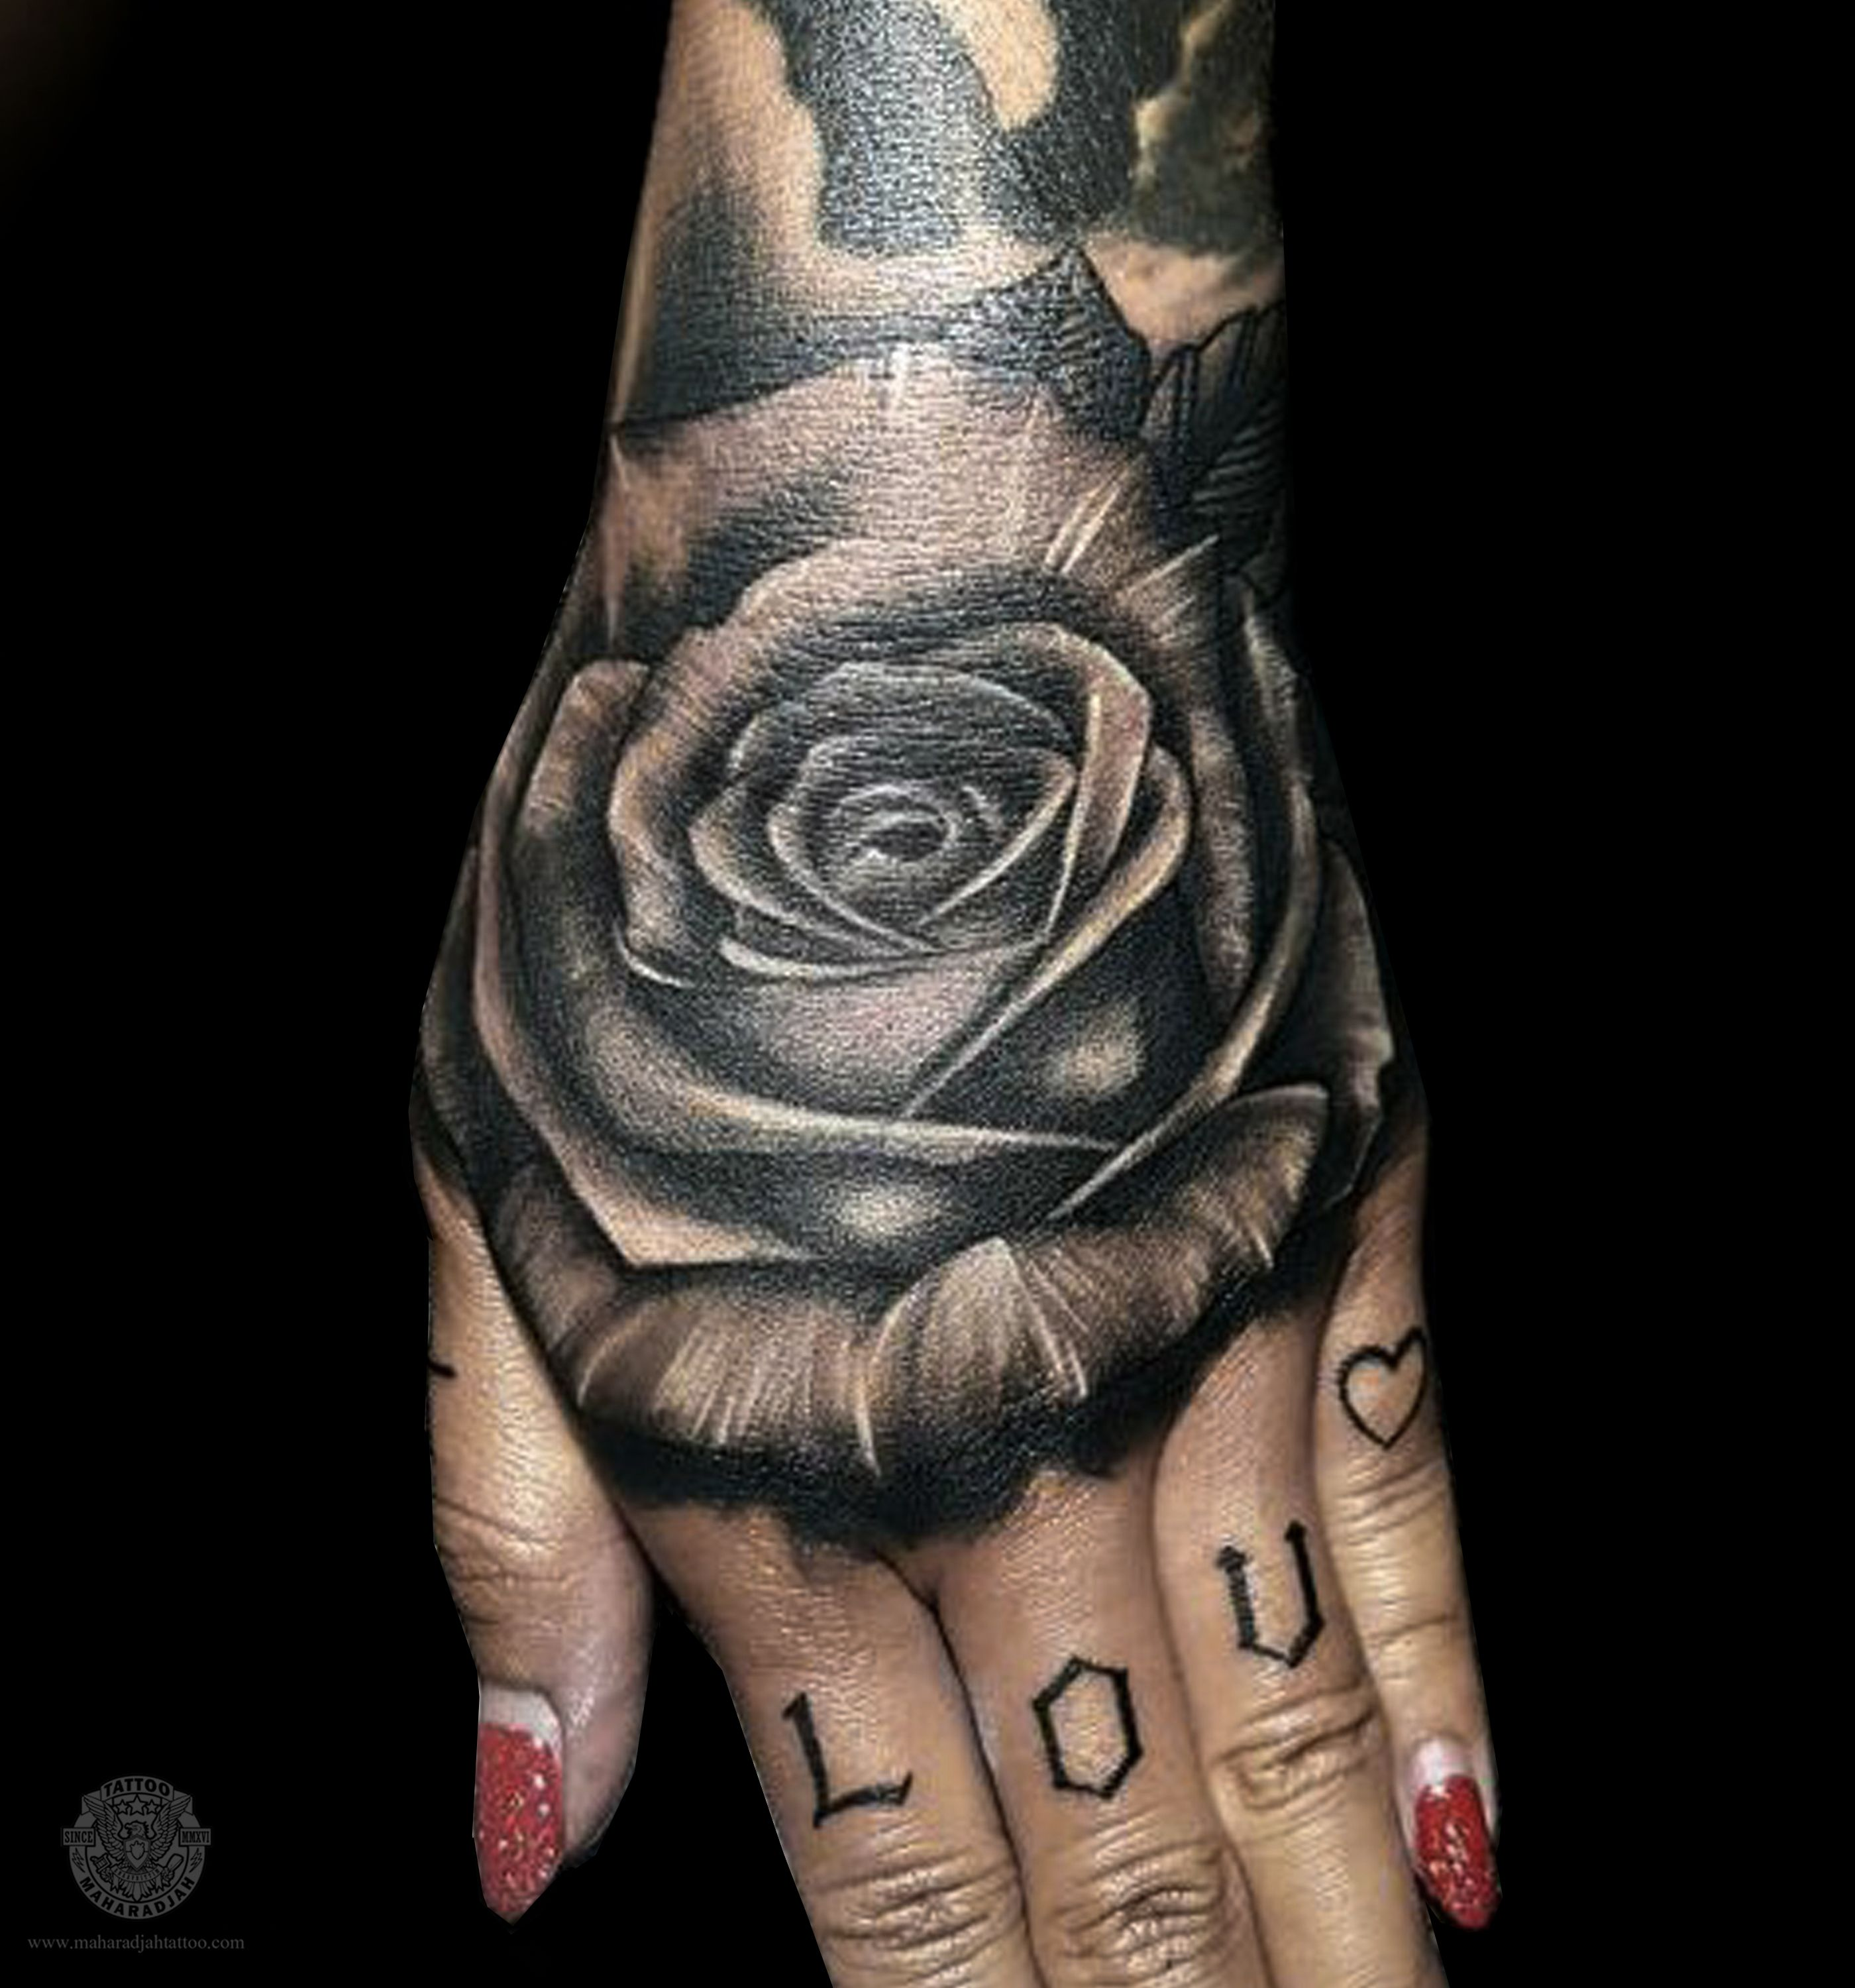 Beautiful rose tattoo design done by oneof our artist at